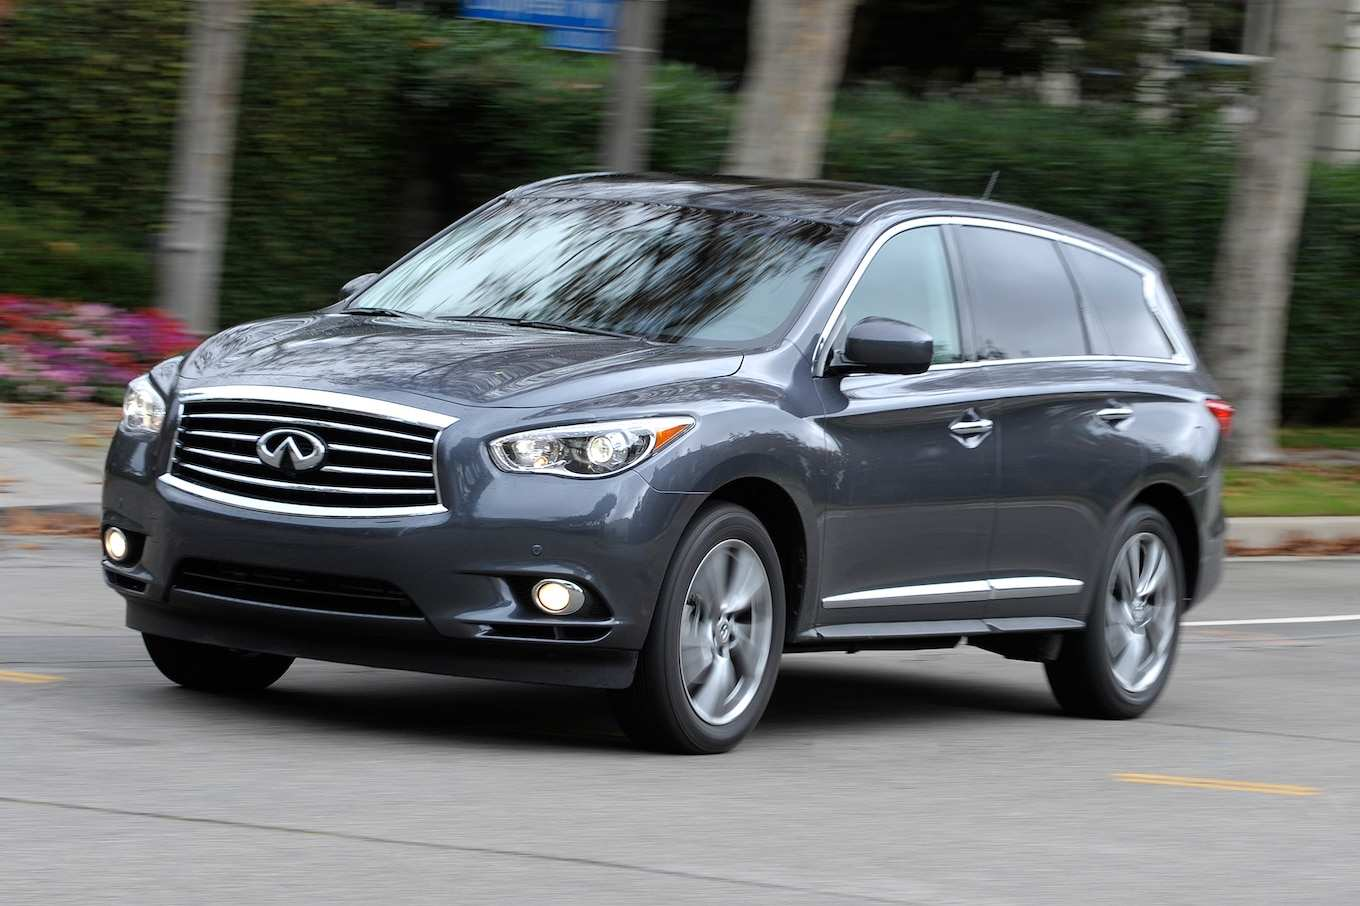 62 The Best 2019 Infiniti Jx 60 History